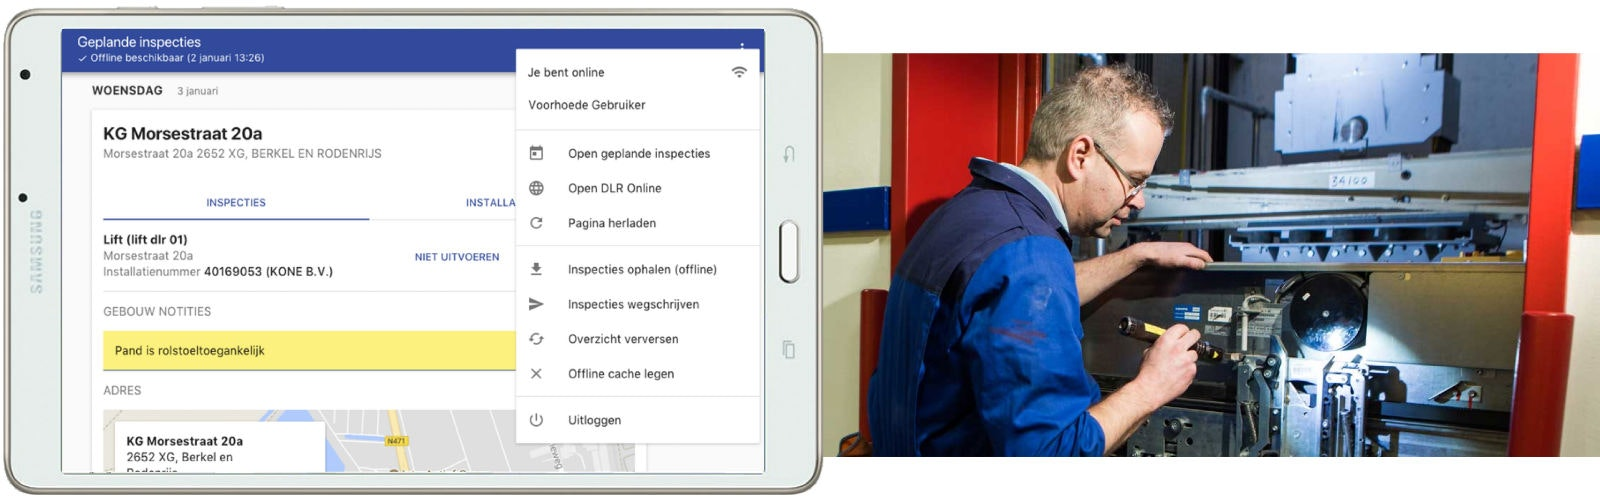 Inspection app on Samsung tablet next to elevator inspector.